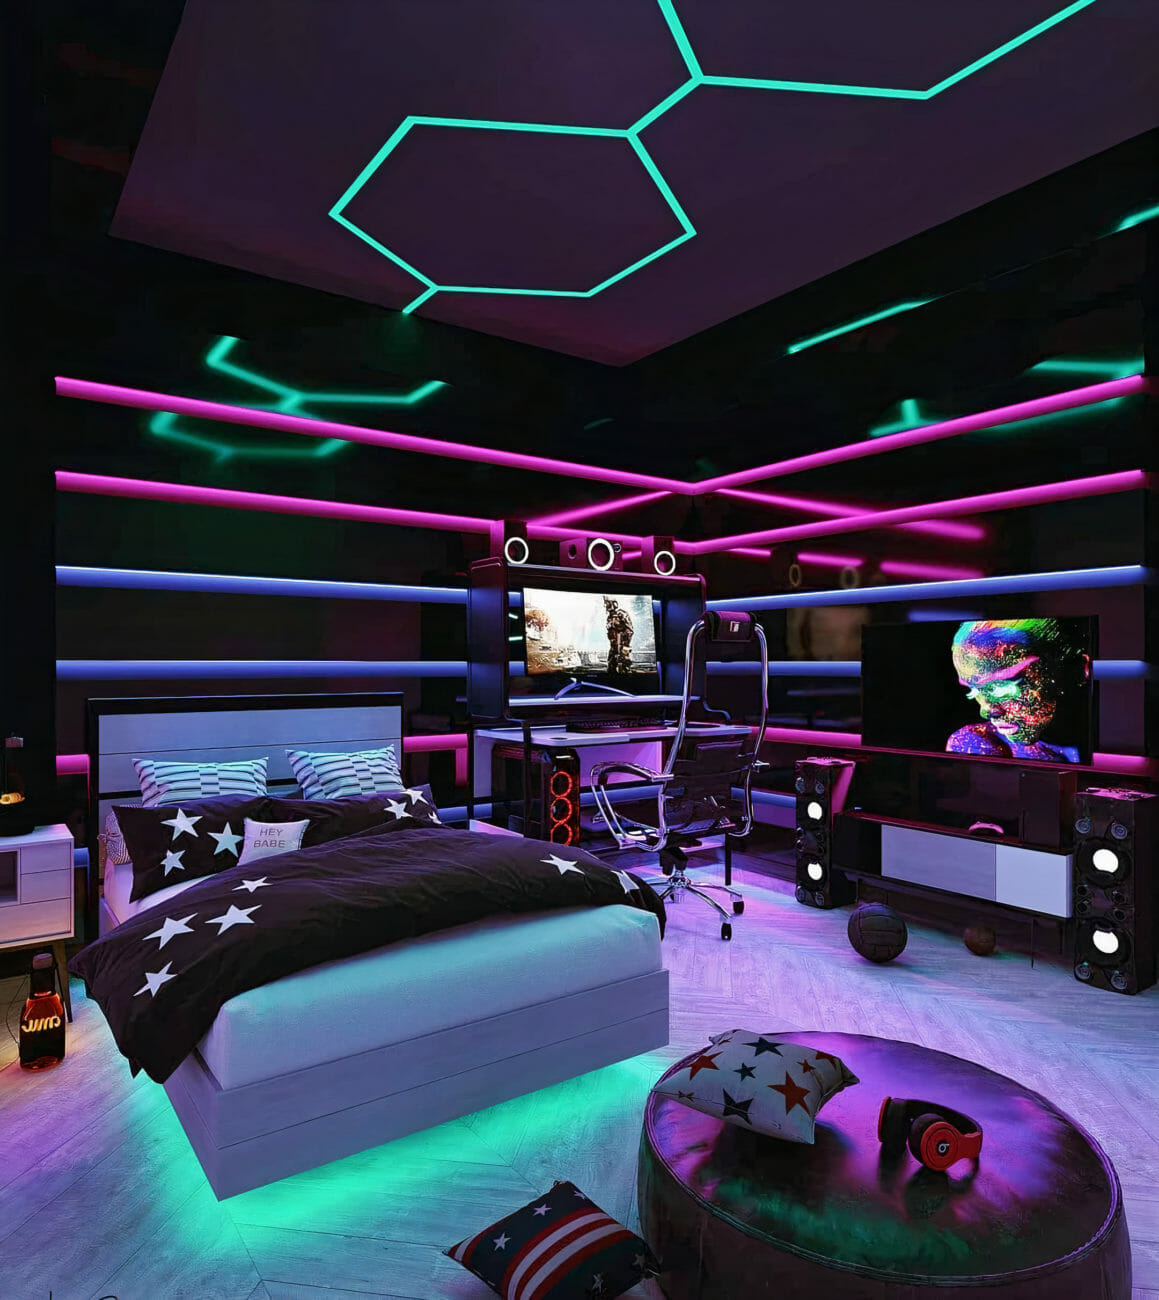 Gaming-Room Design With Bed